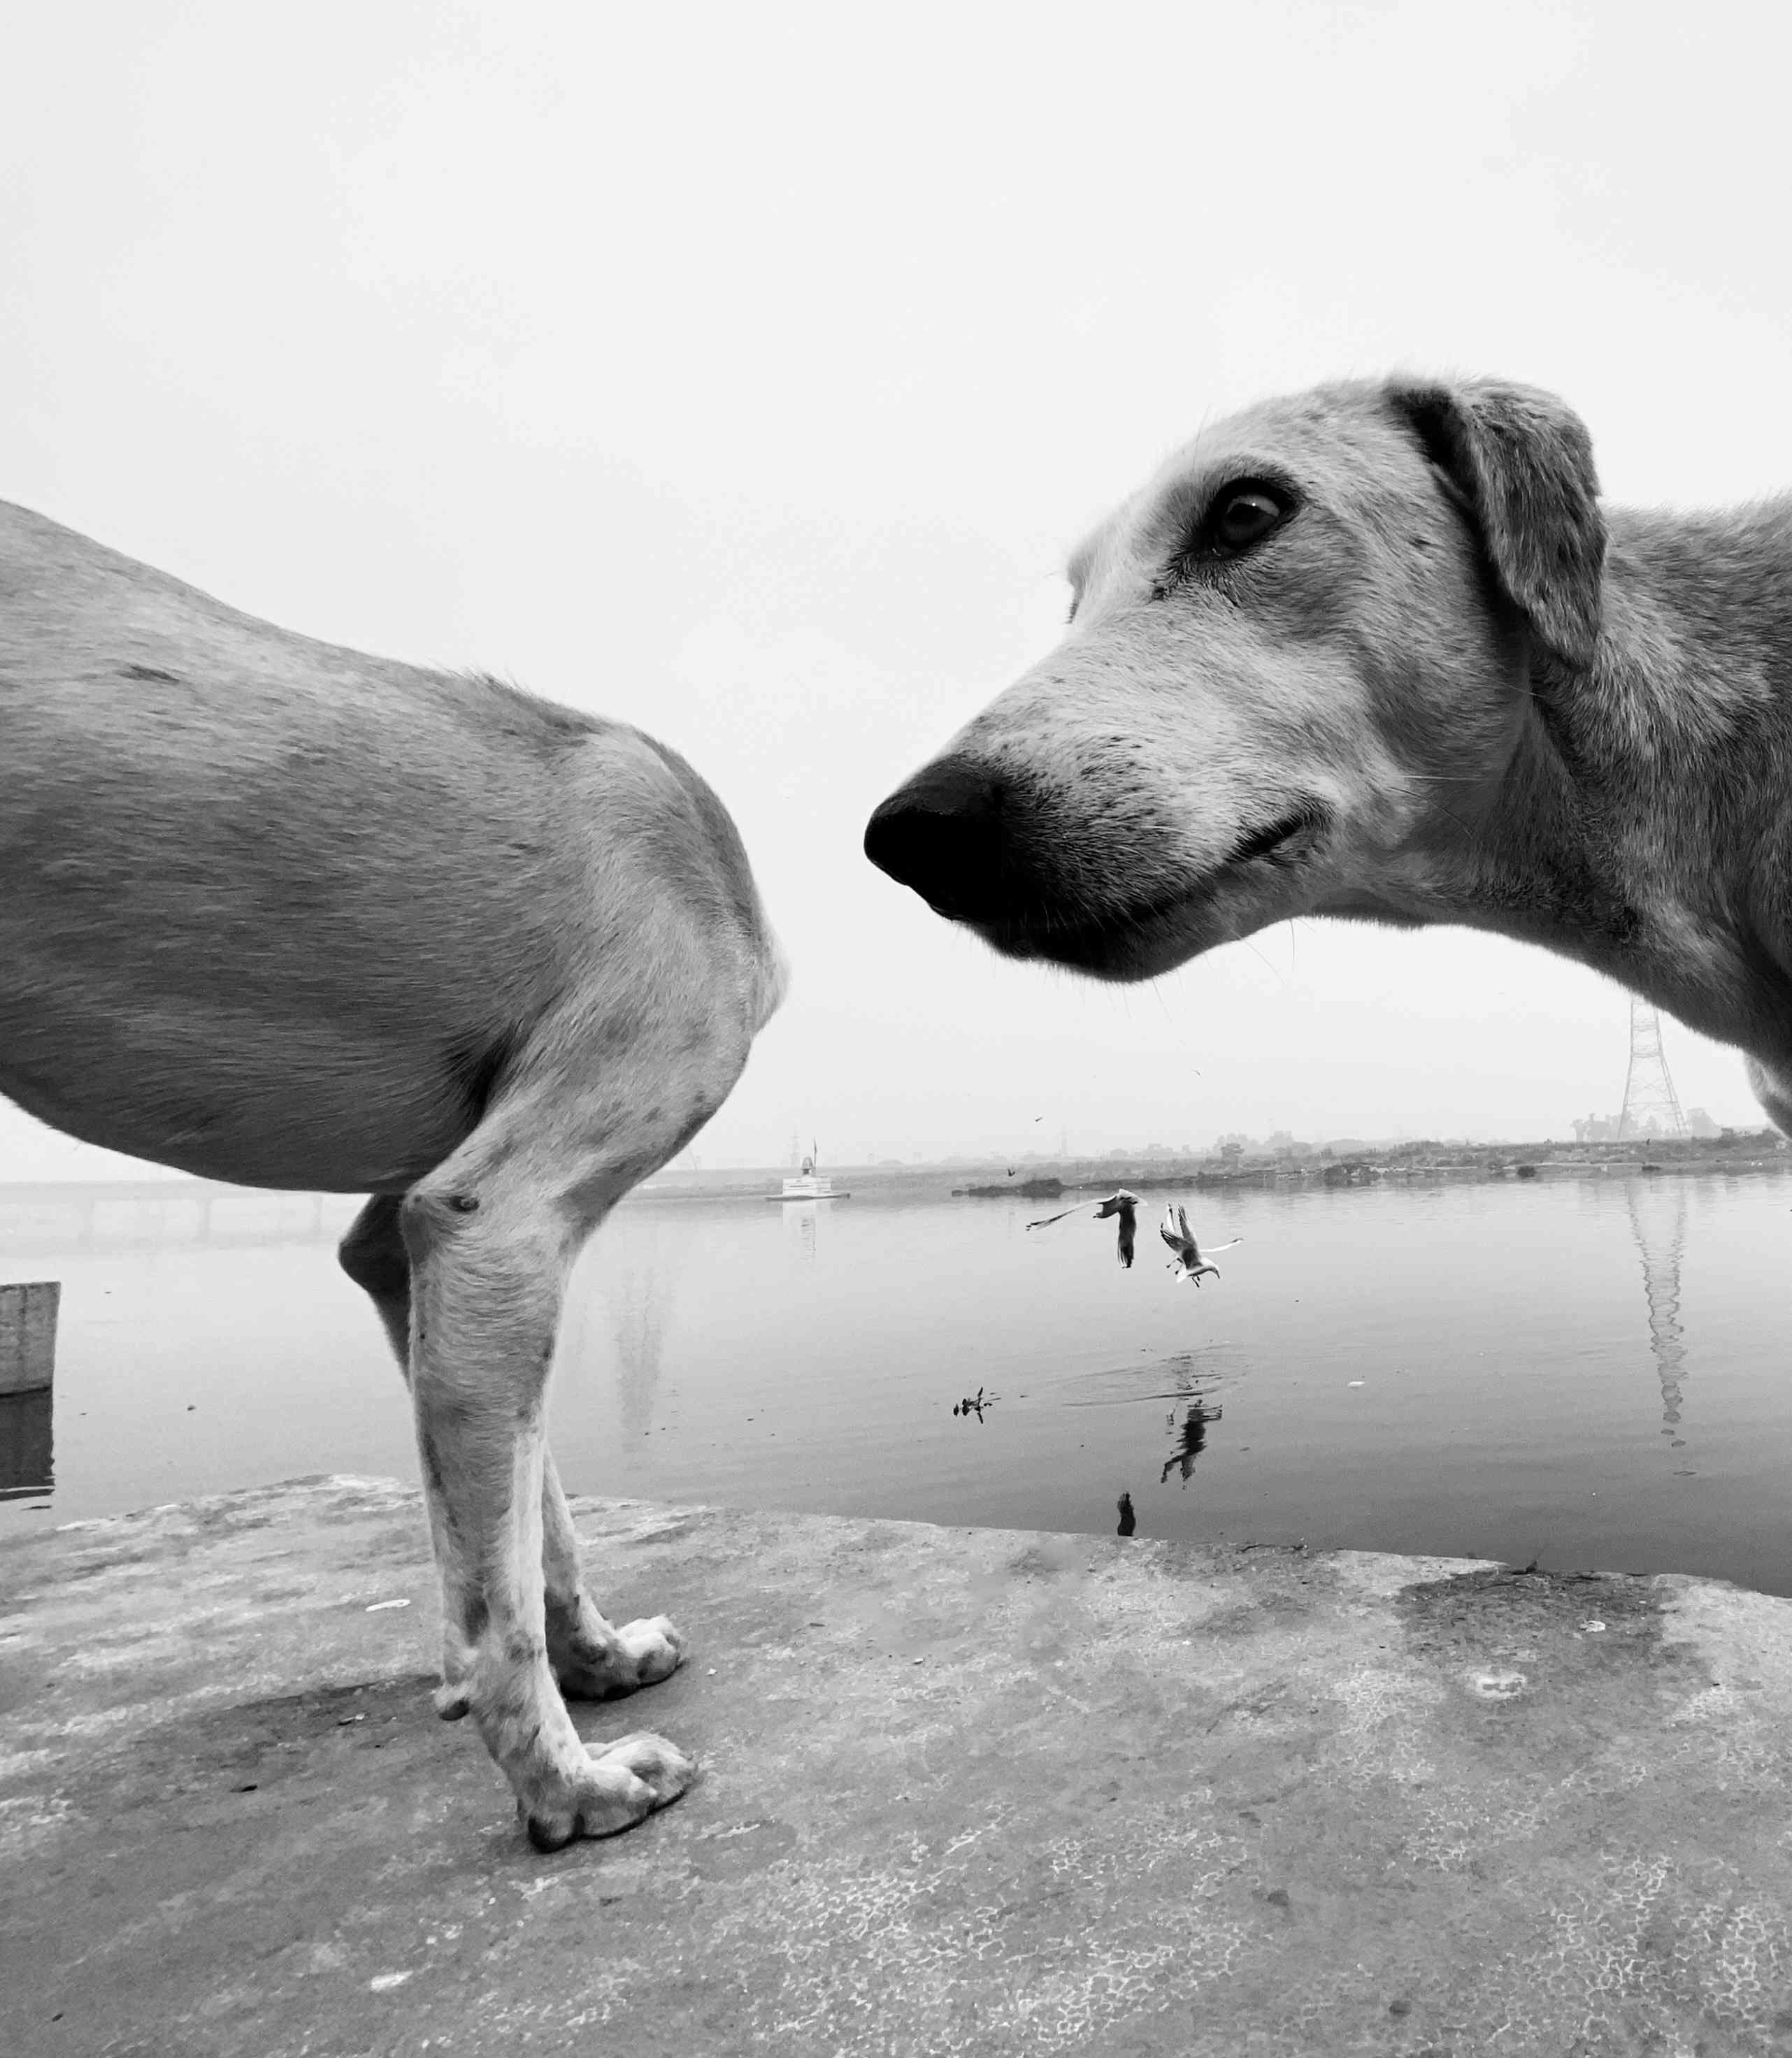 dog sniffing another dog's head